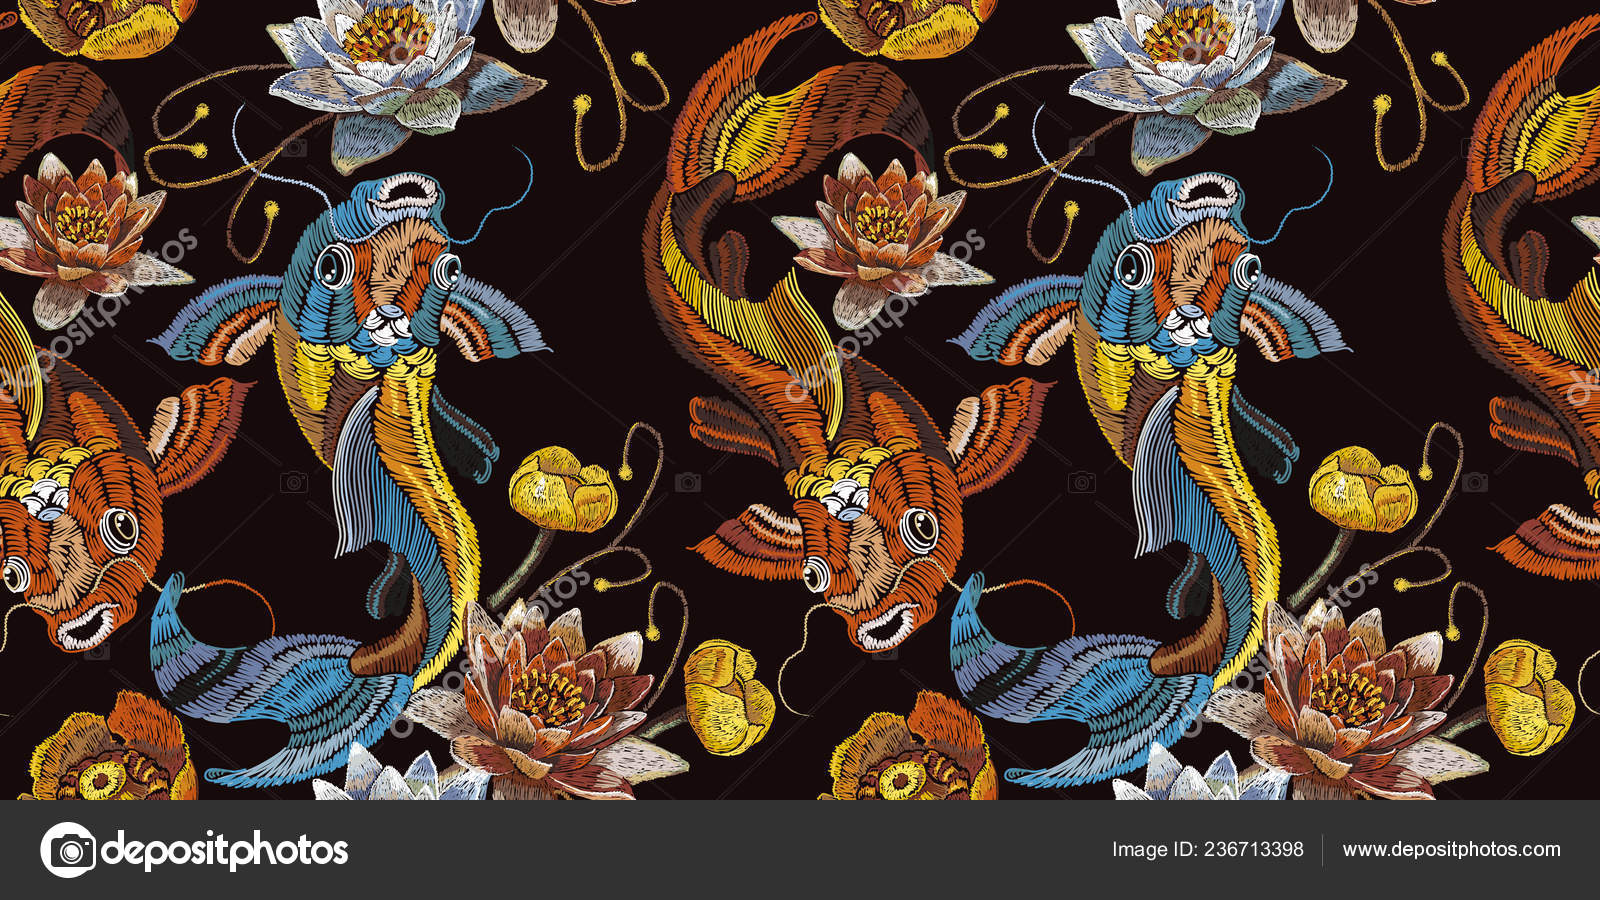 Embroidery vintage koi fish and water lily seamless pattern japanese art classical embroidery koi carp pink and white lotuses and water lilies